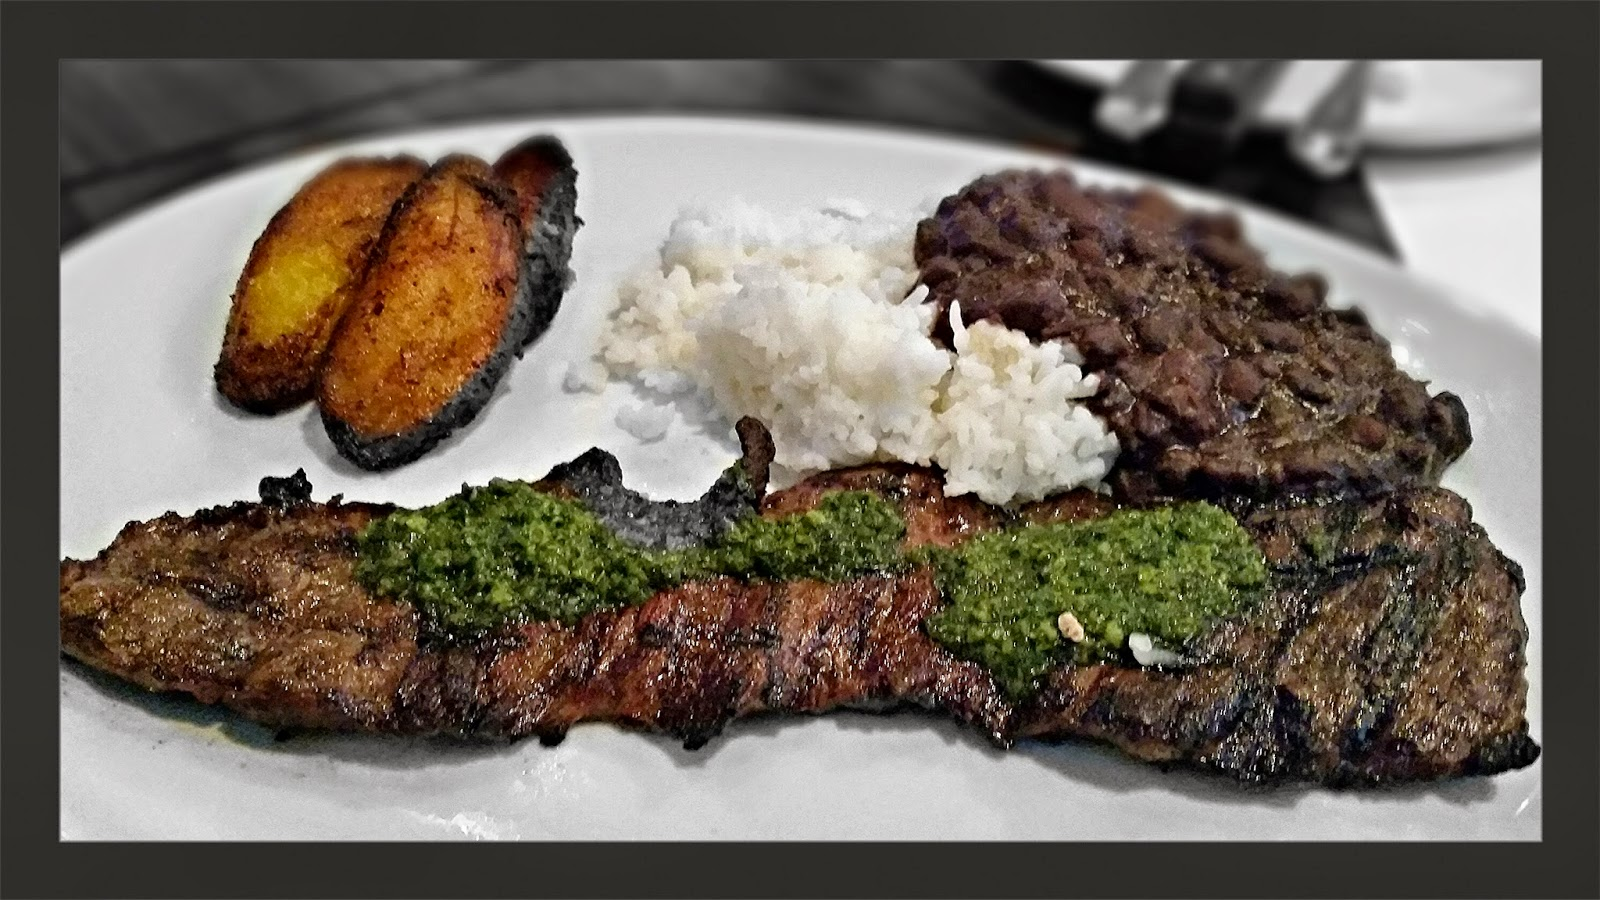 5956 also 5956 furthermore World Cup Cuisine Argentinian Steak With Chimichurri Sauce as well Churrasco Al Estilo Argentino as well 4th Of July Recipe Grilled Marinated Flank Steak With Arugula Salad. on chimichurri steak